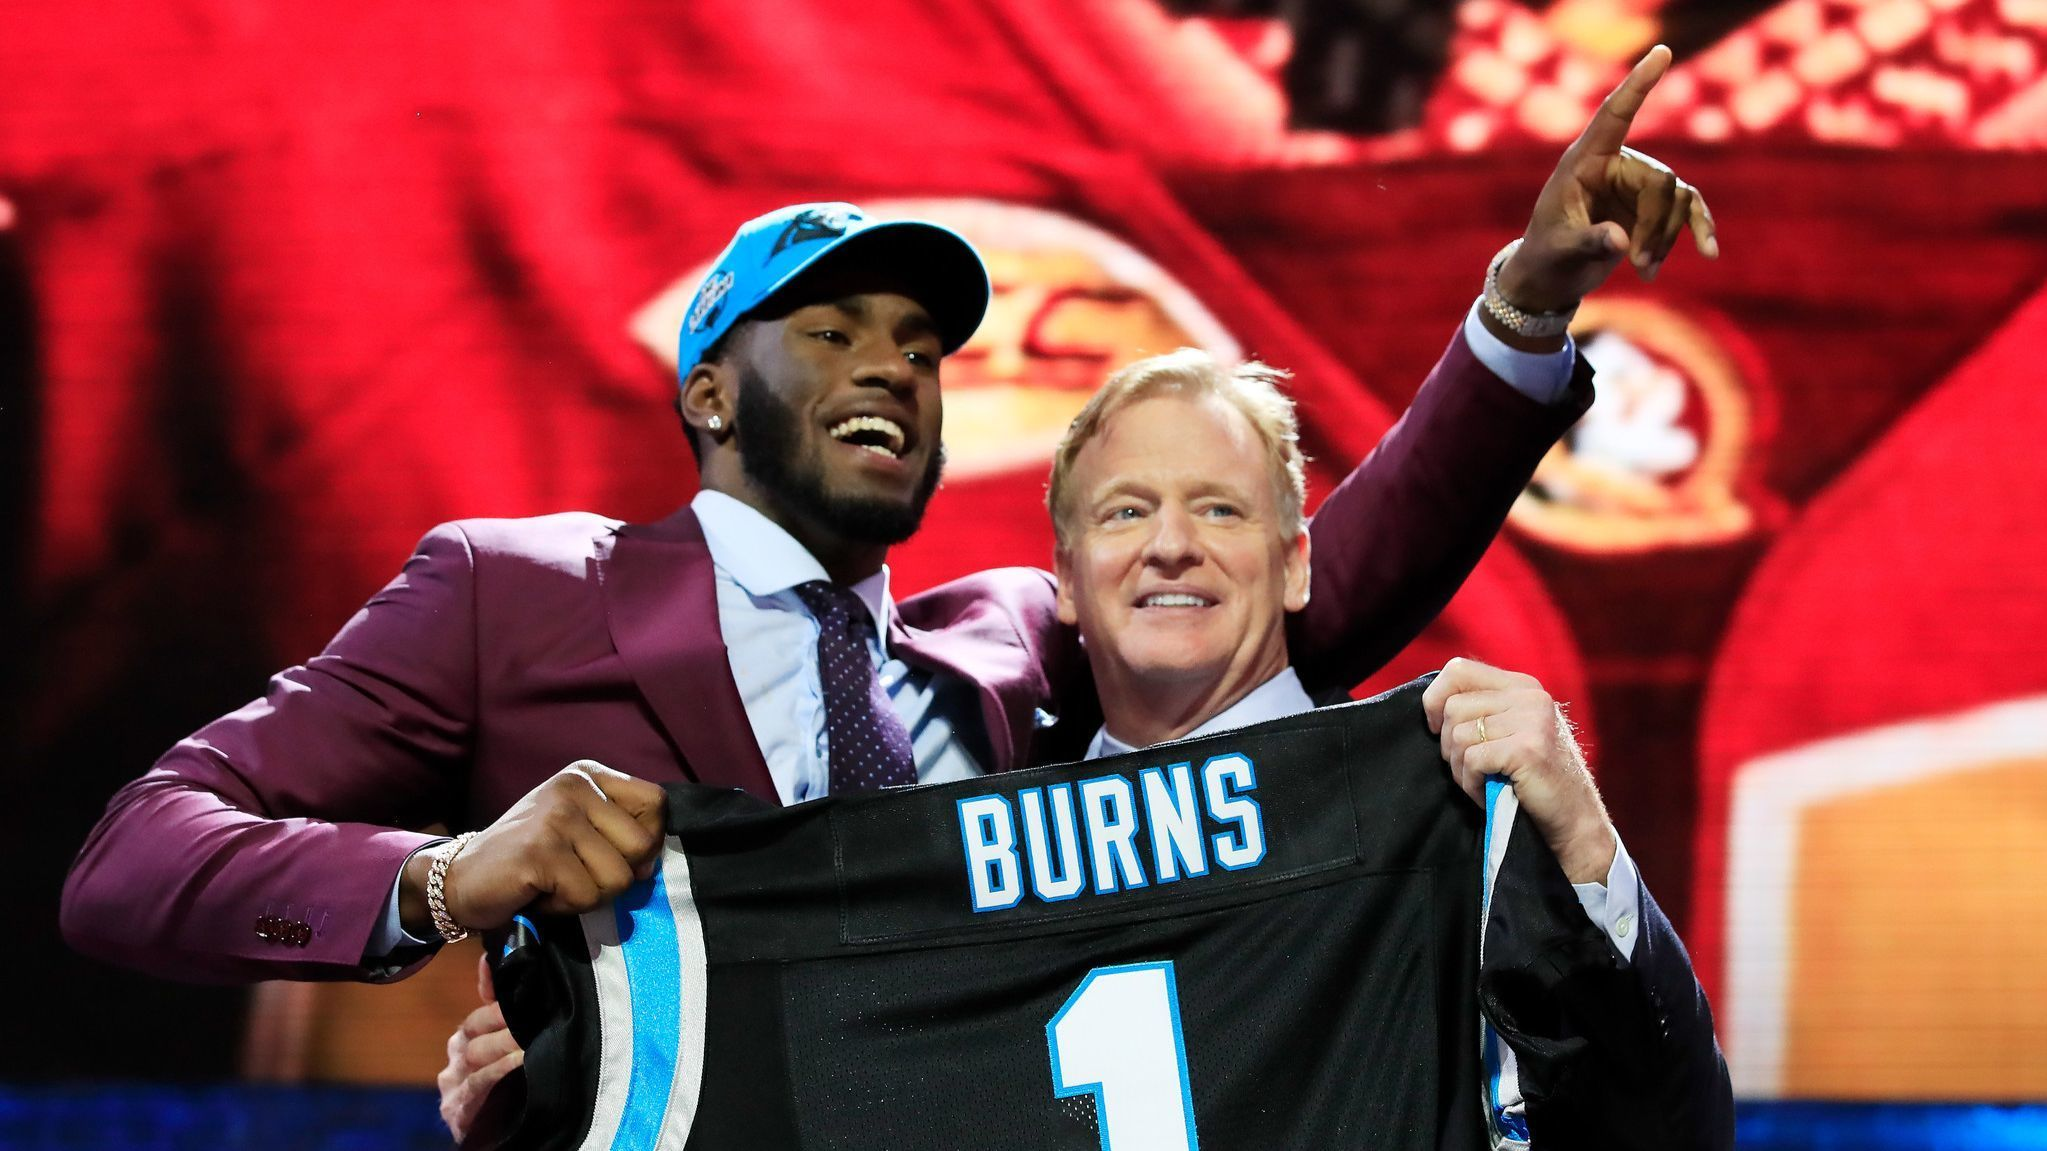 FSU standout Brian Burns selected in first round of NFL Draft by Carolina Panthers